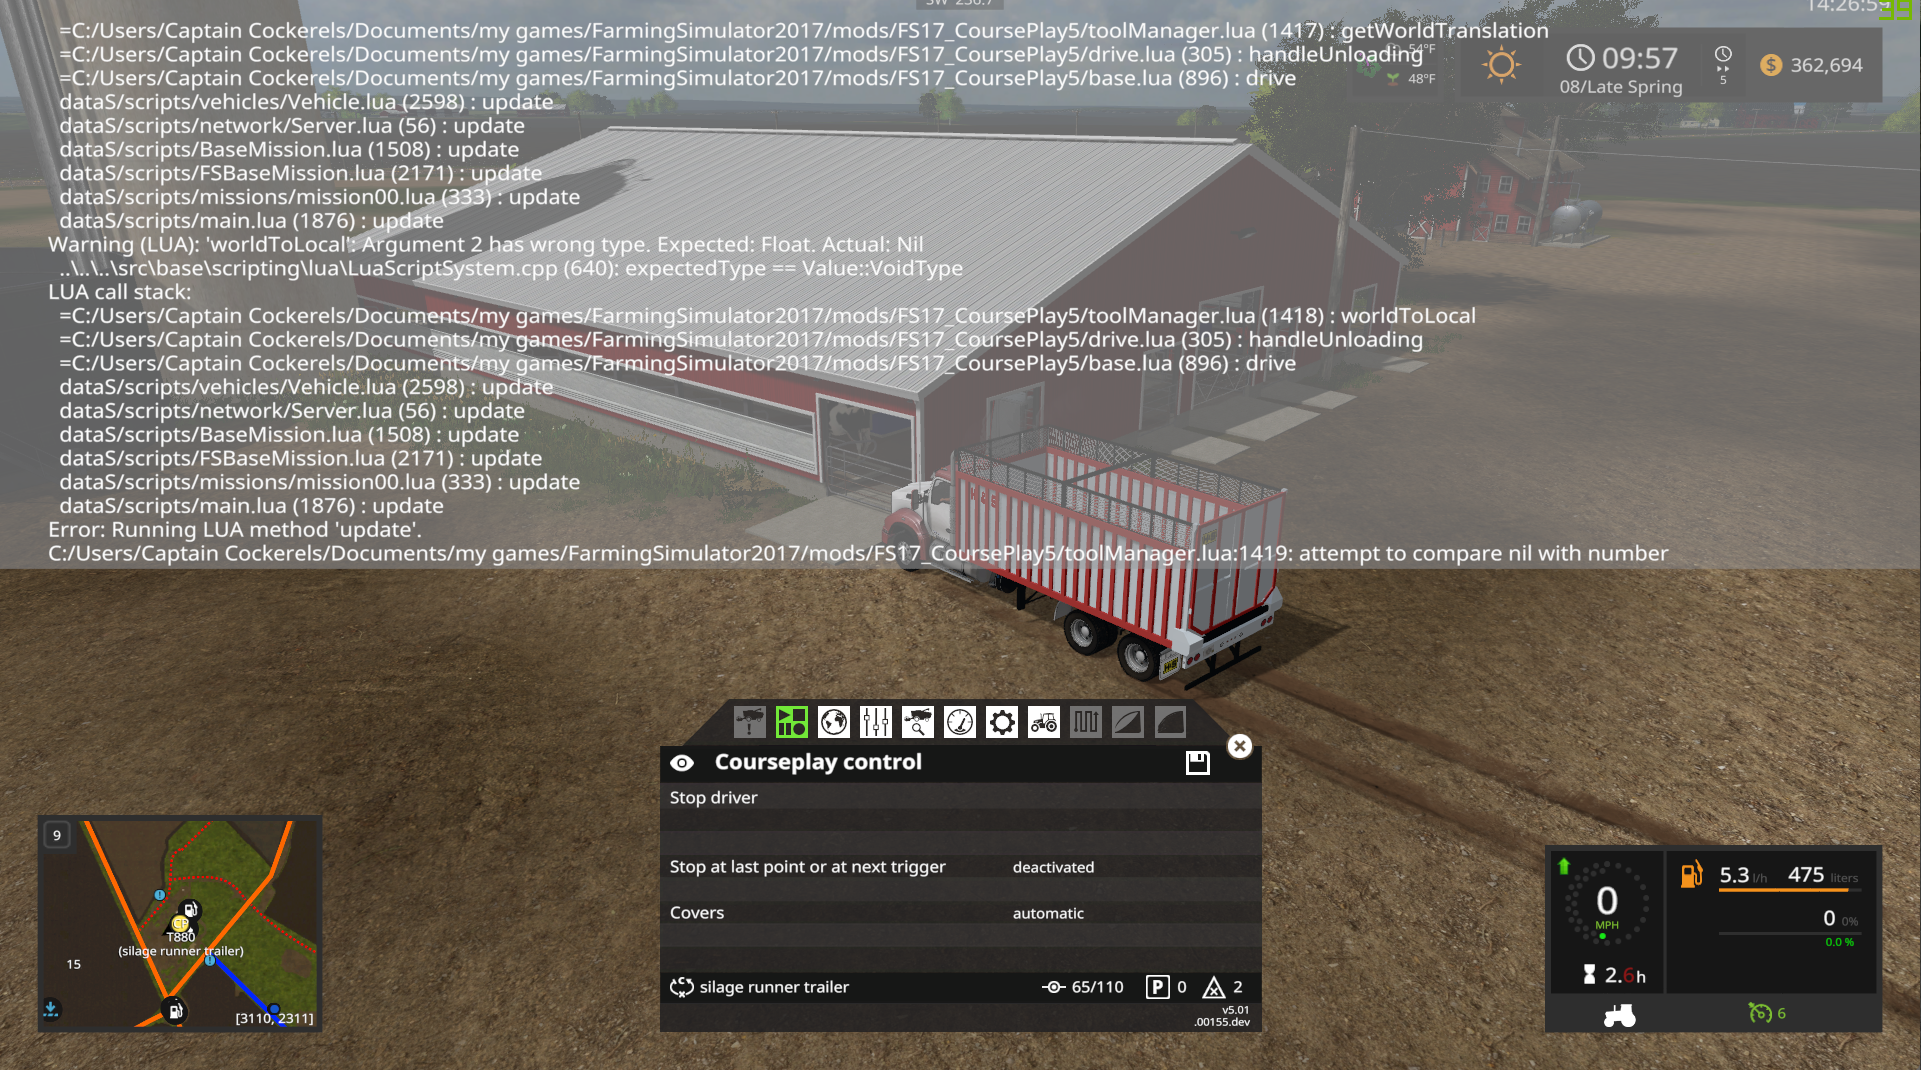 Fs17 Game freezing when truck reaches tip trigger · Issue